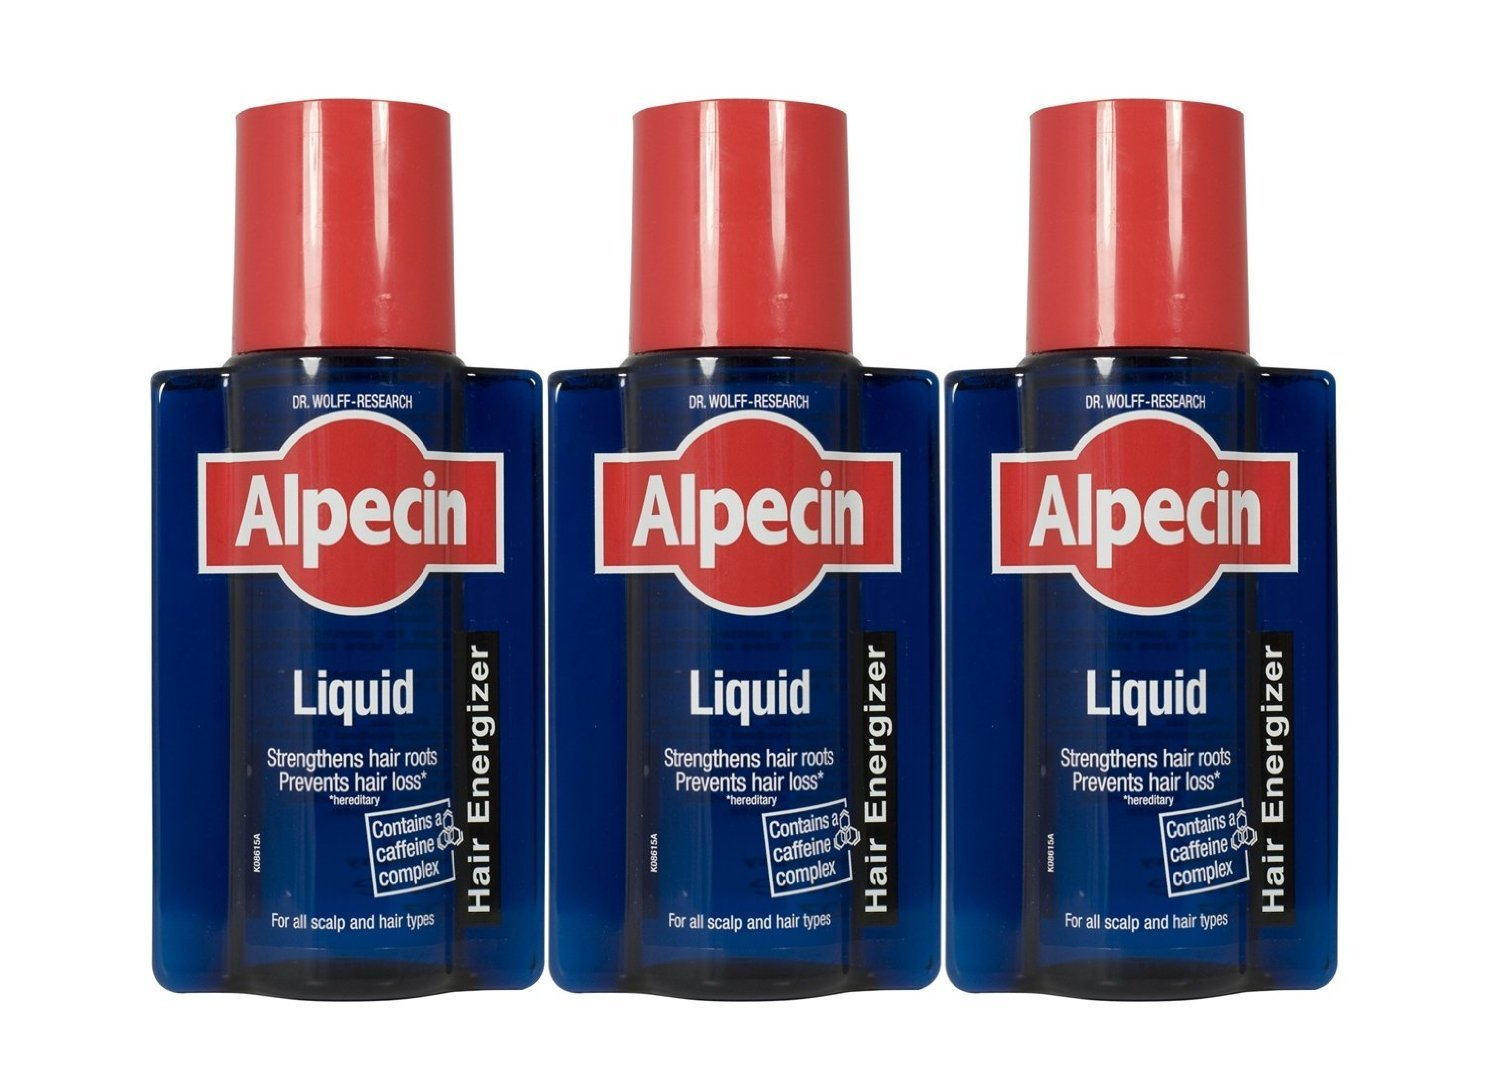 Alpecin Caffeine After Shampoo Liquid Hair Energizer 200ml  Pack of 3